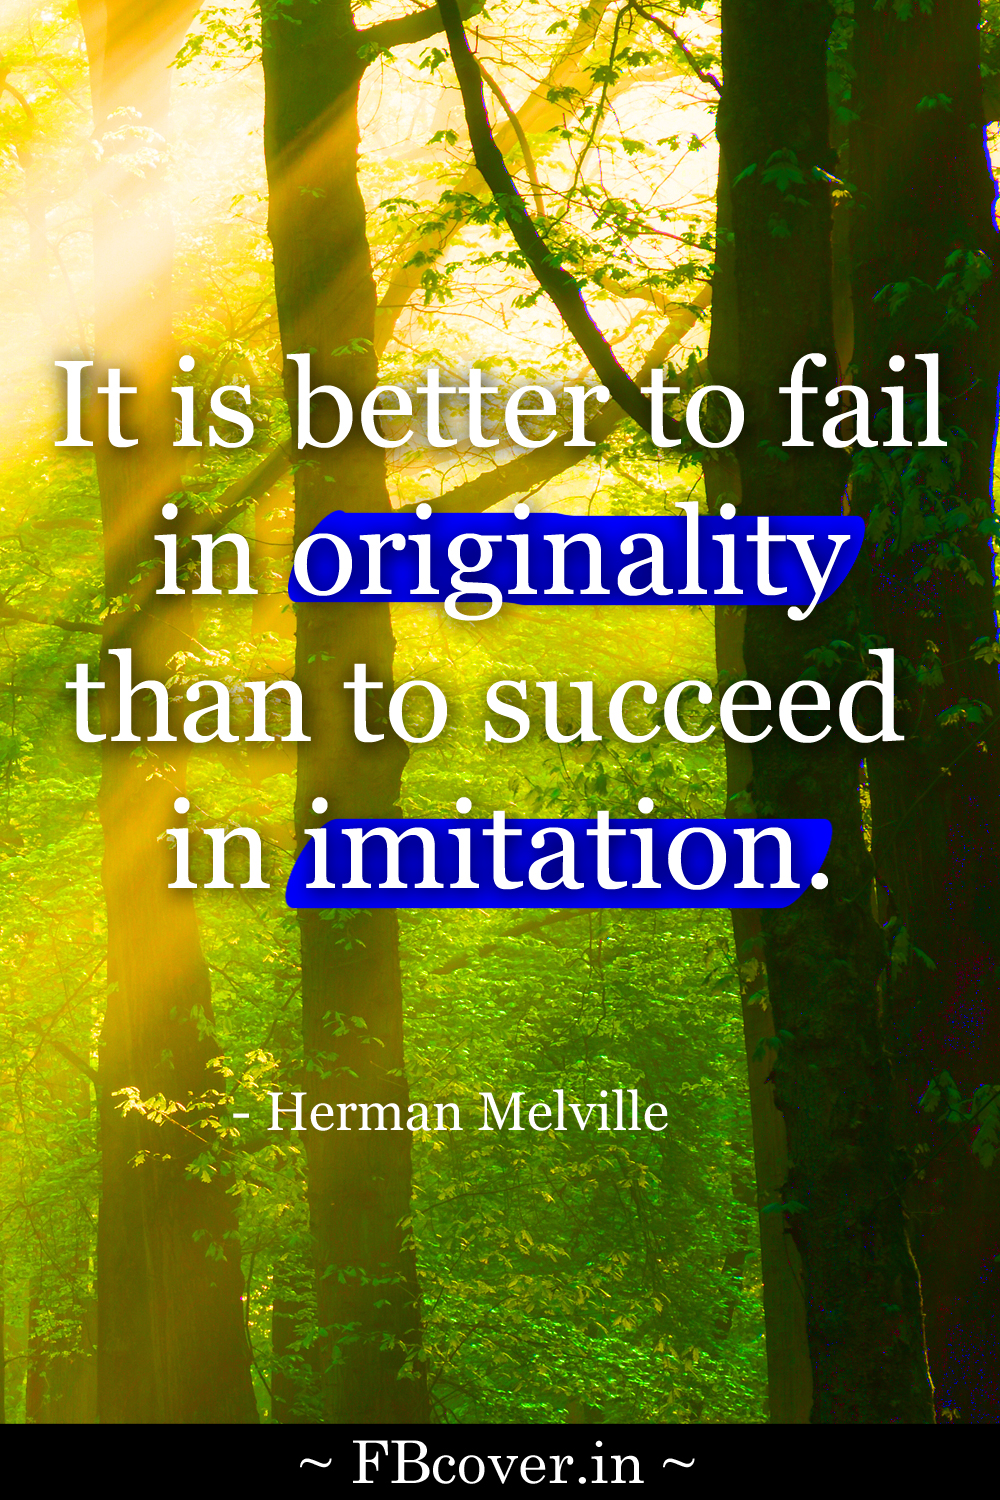 it is better to fail in originality than to succeed in imitation, quotes herman melville